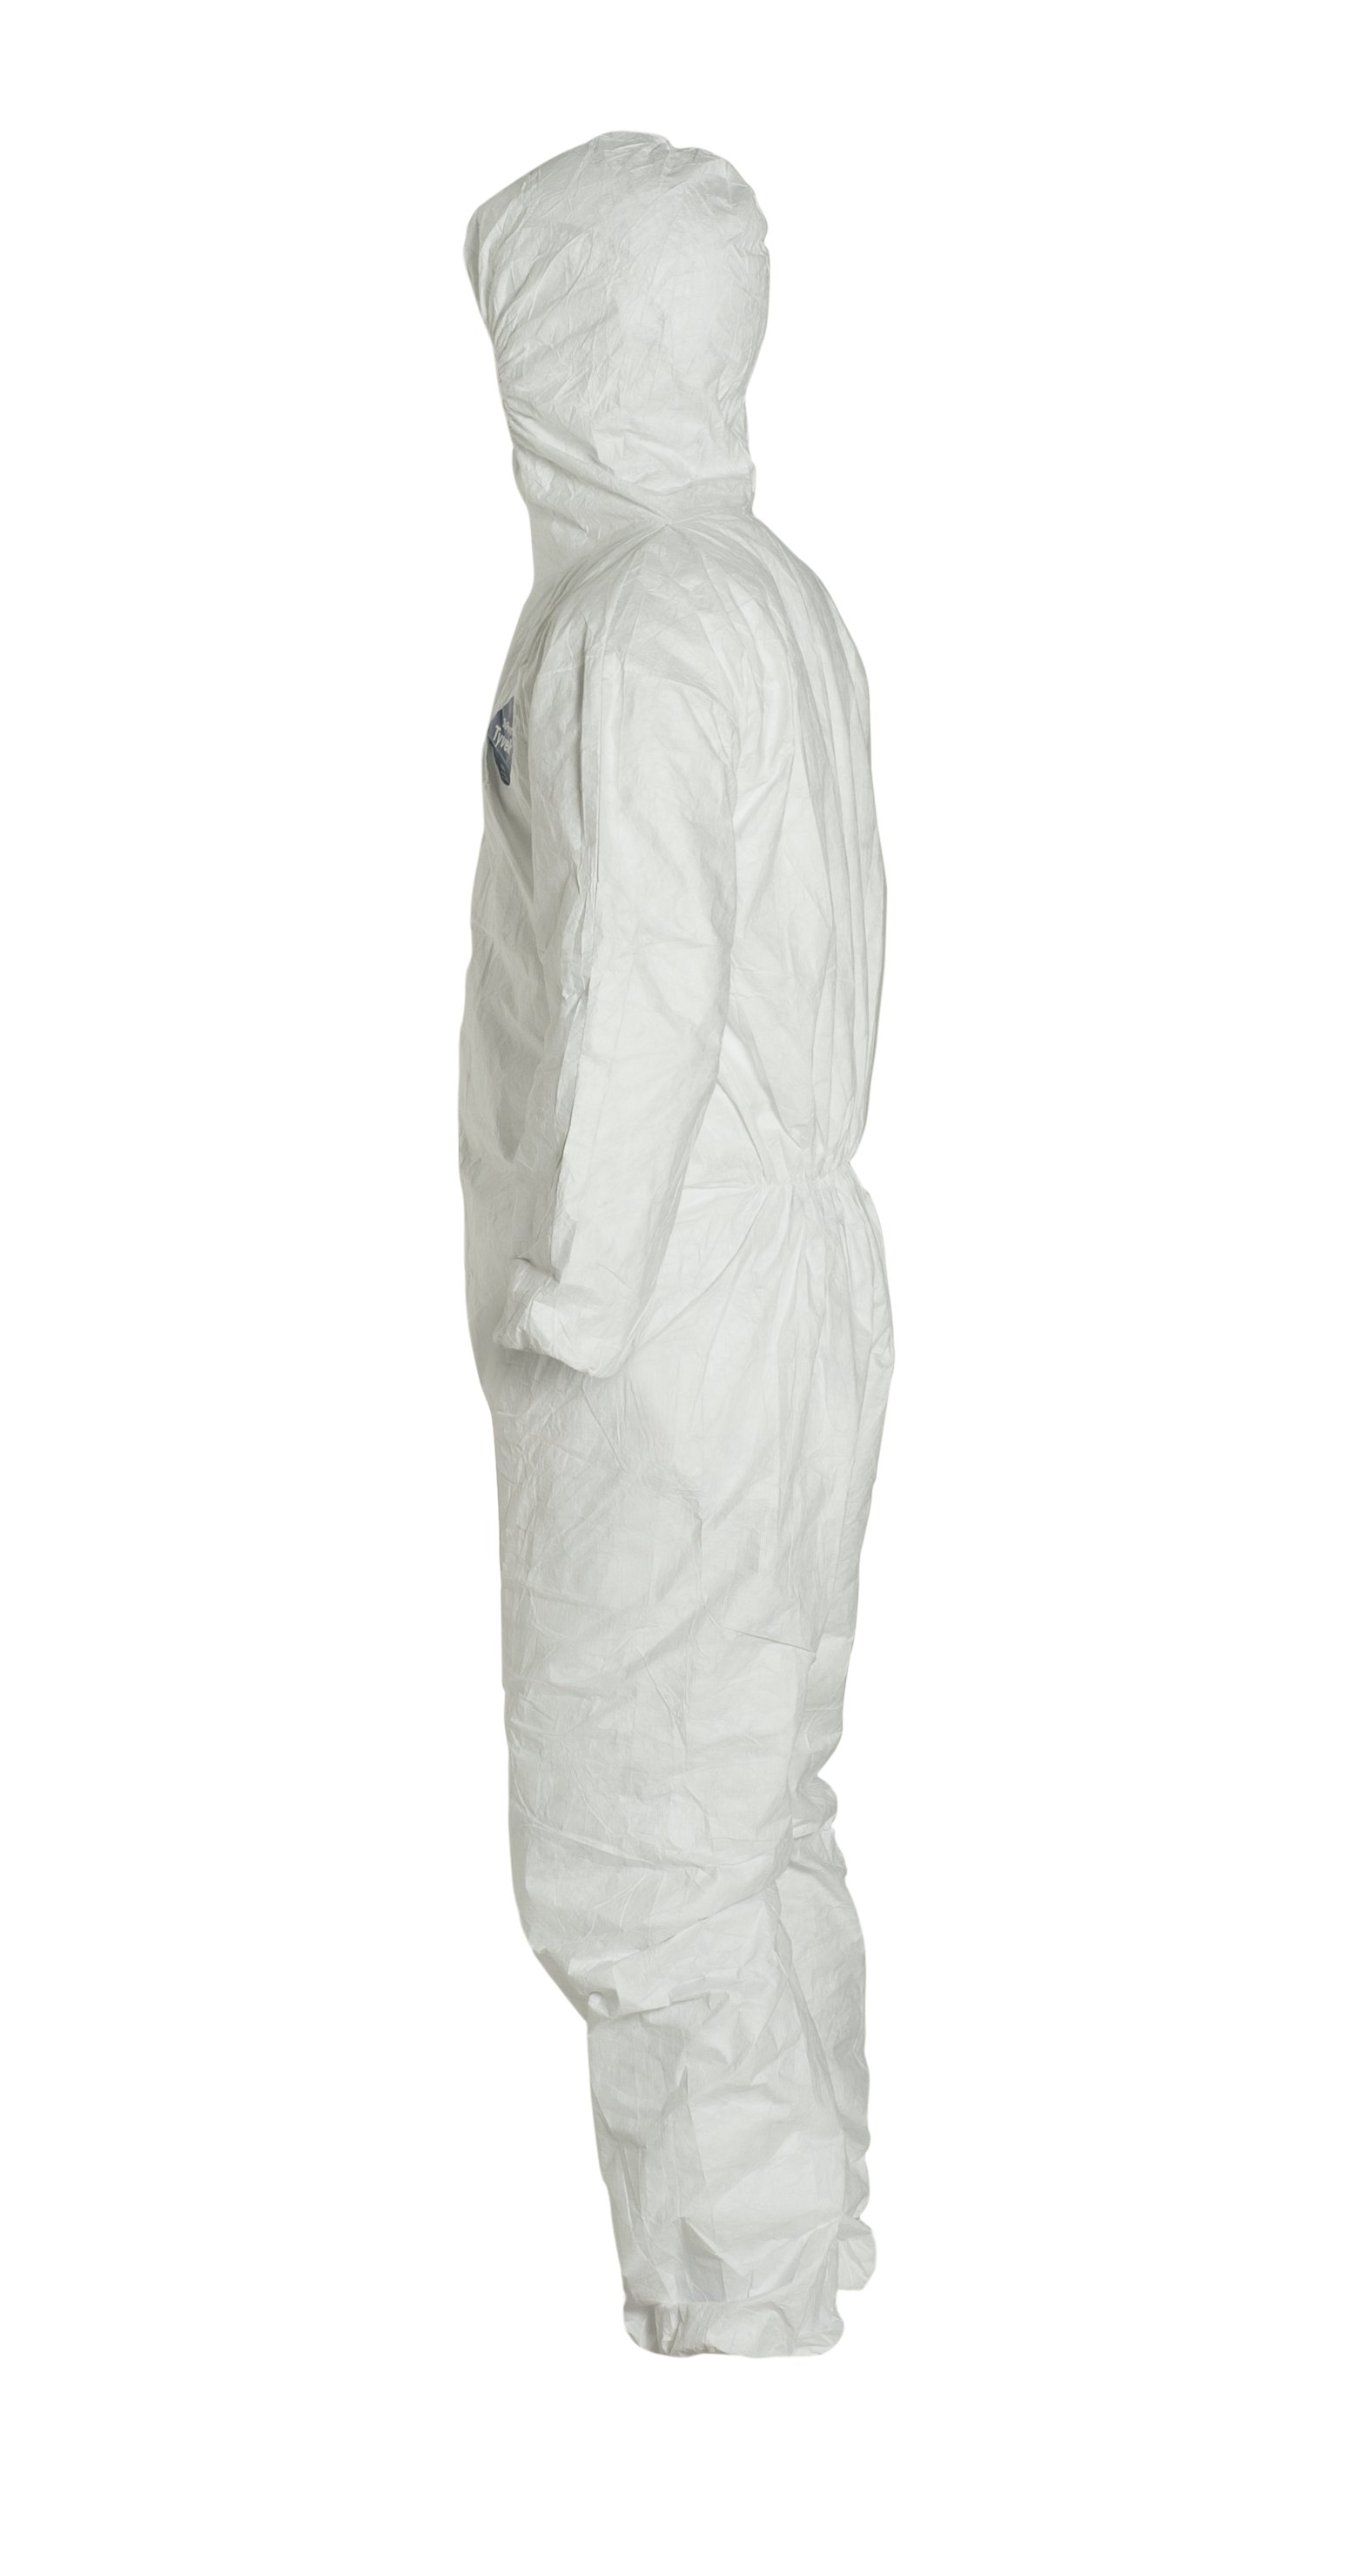 DuPont Tyvek 400 TY127S  Protective Coverall with Hood, Disposable, Elastic Cuff, White, X-Large (Pack of 25) by DuPont (Image #8)